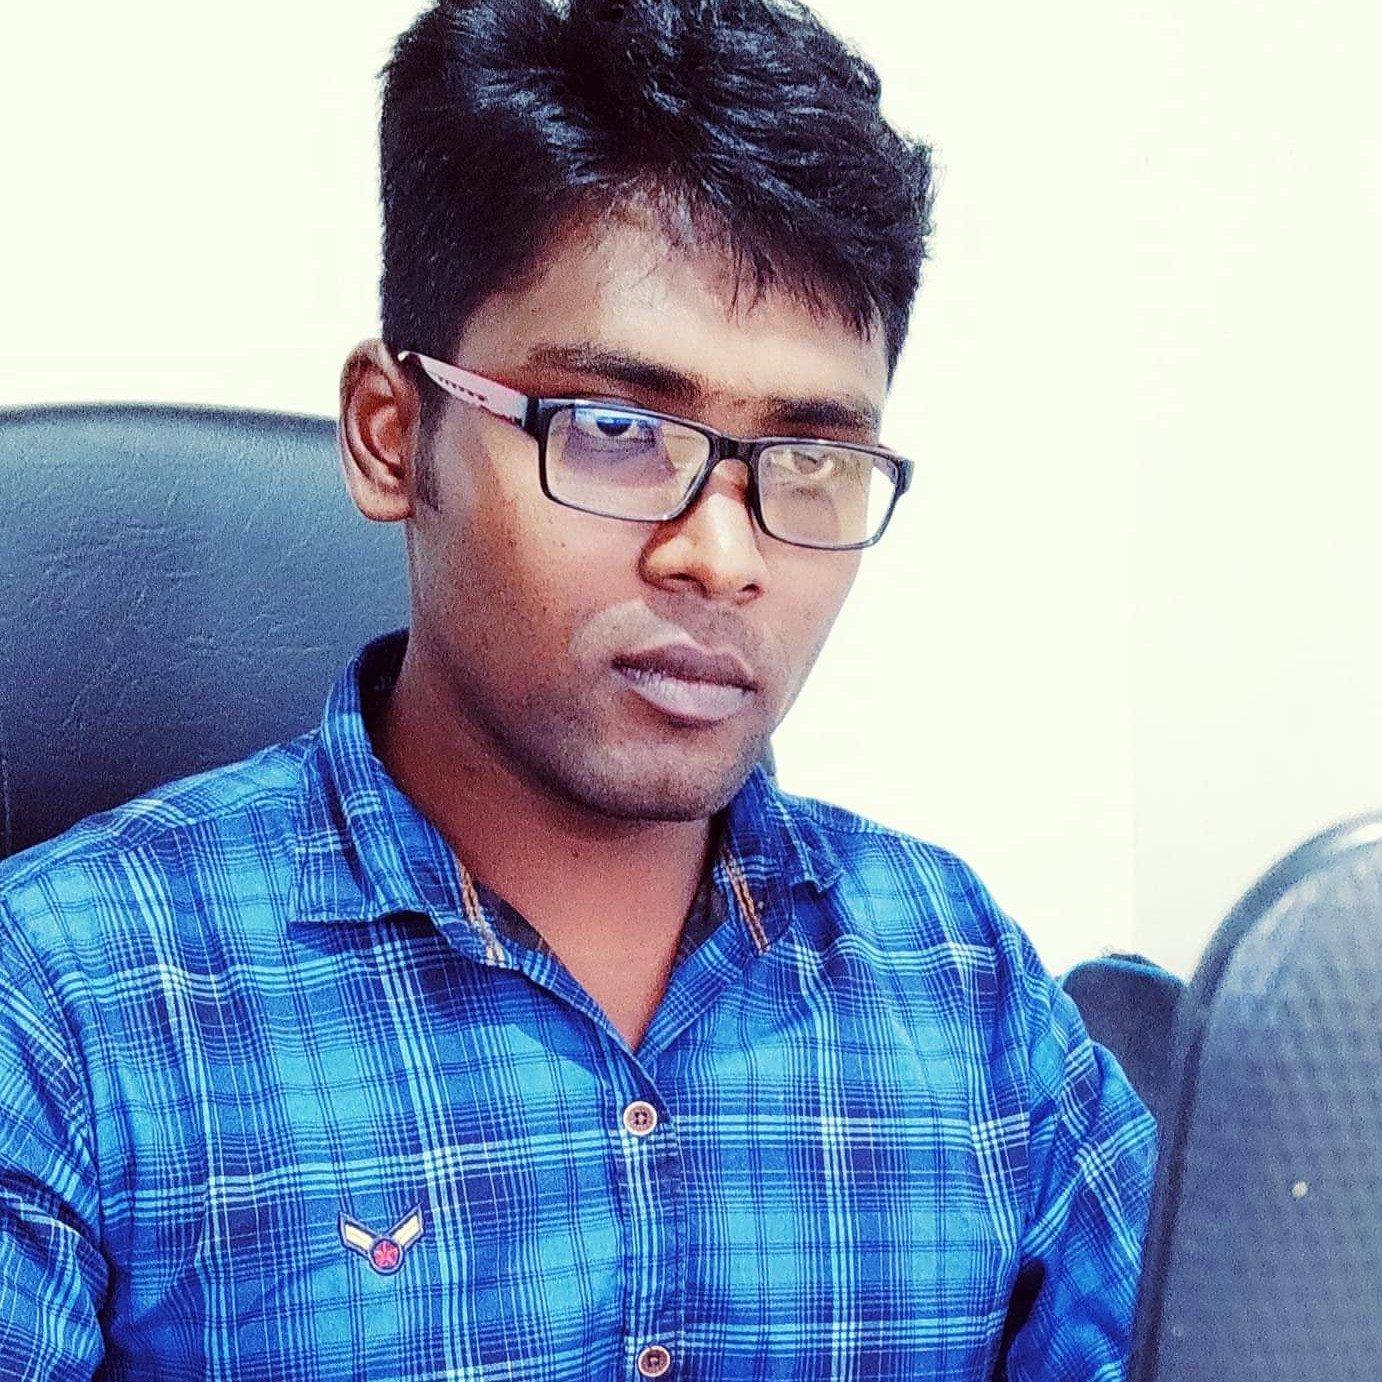 Kumarbd444's profile picture